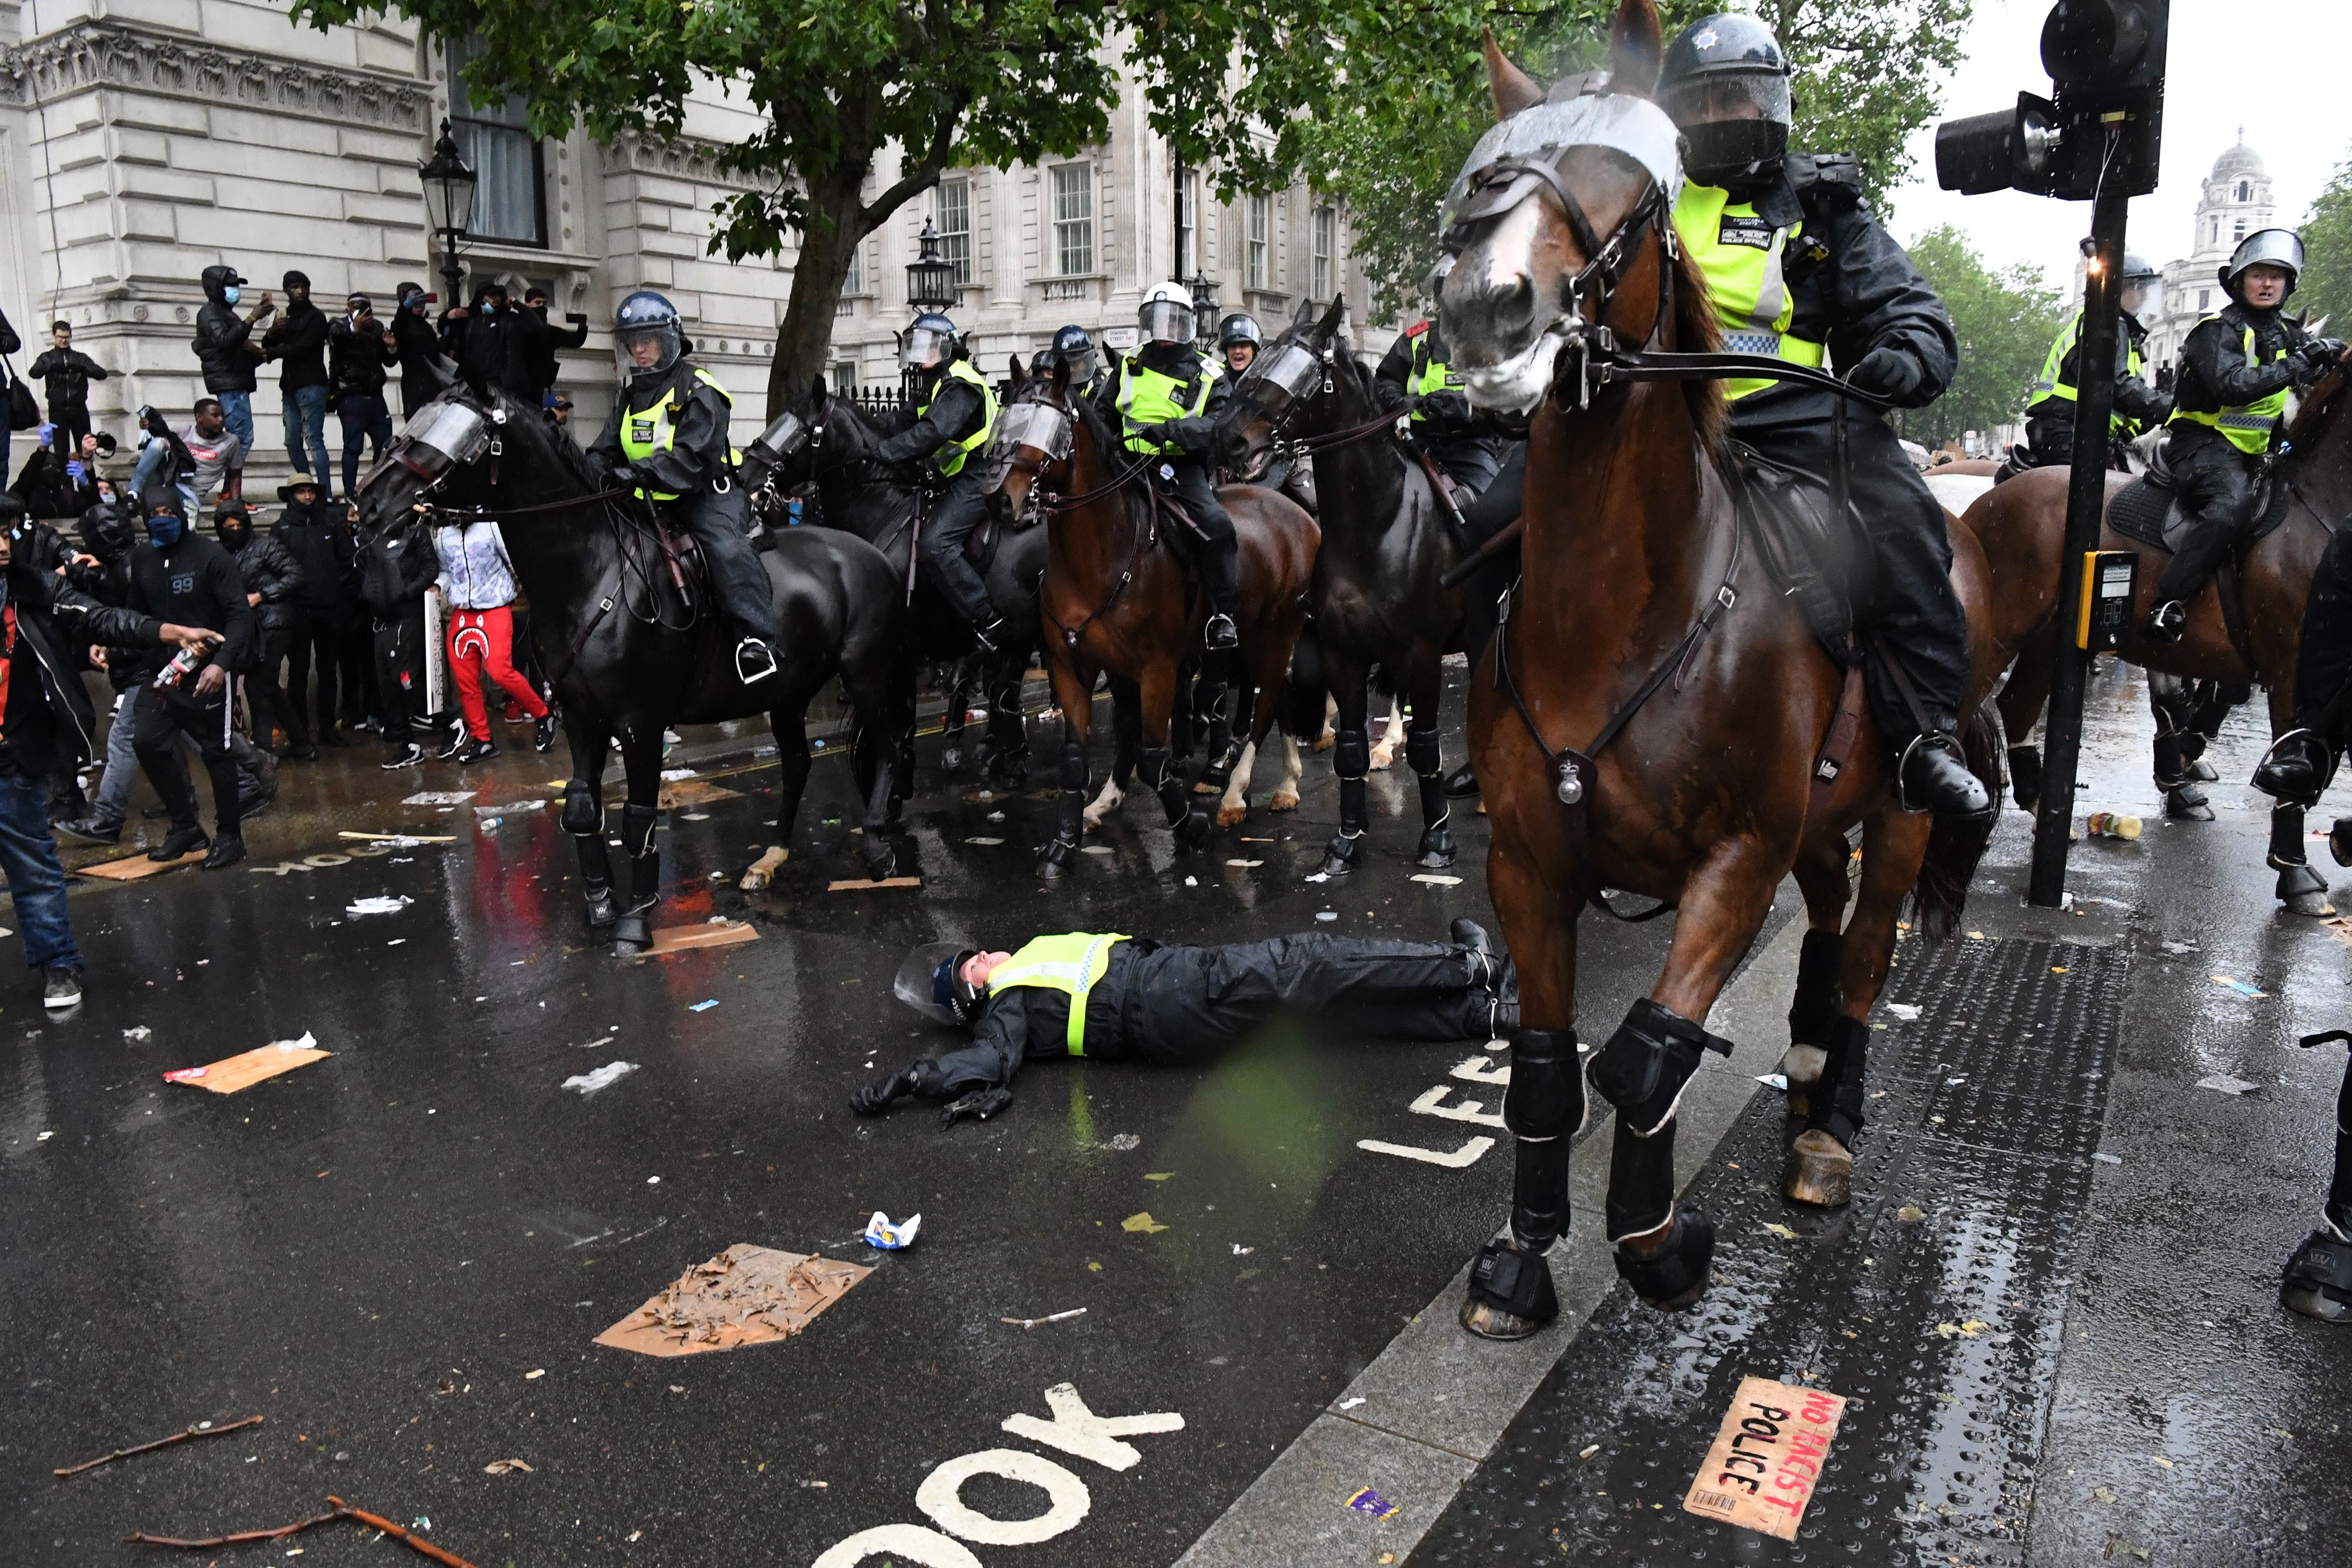 A police officer lies on the ground after her horse bolted.